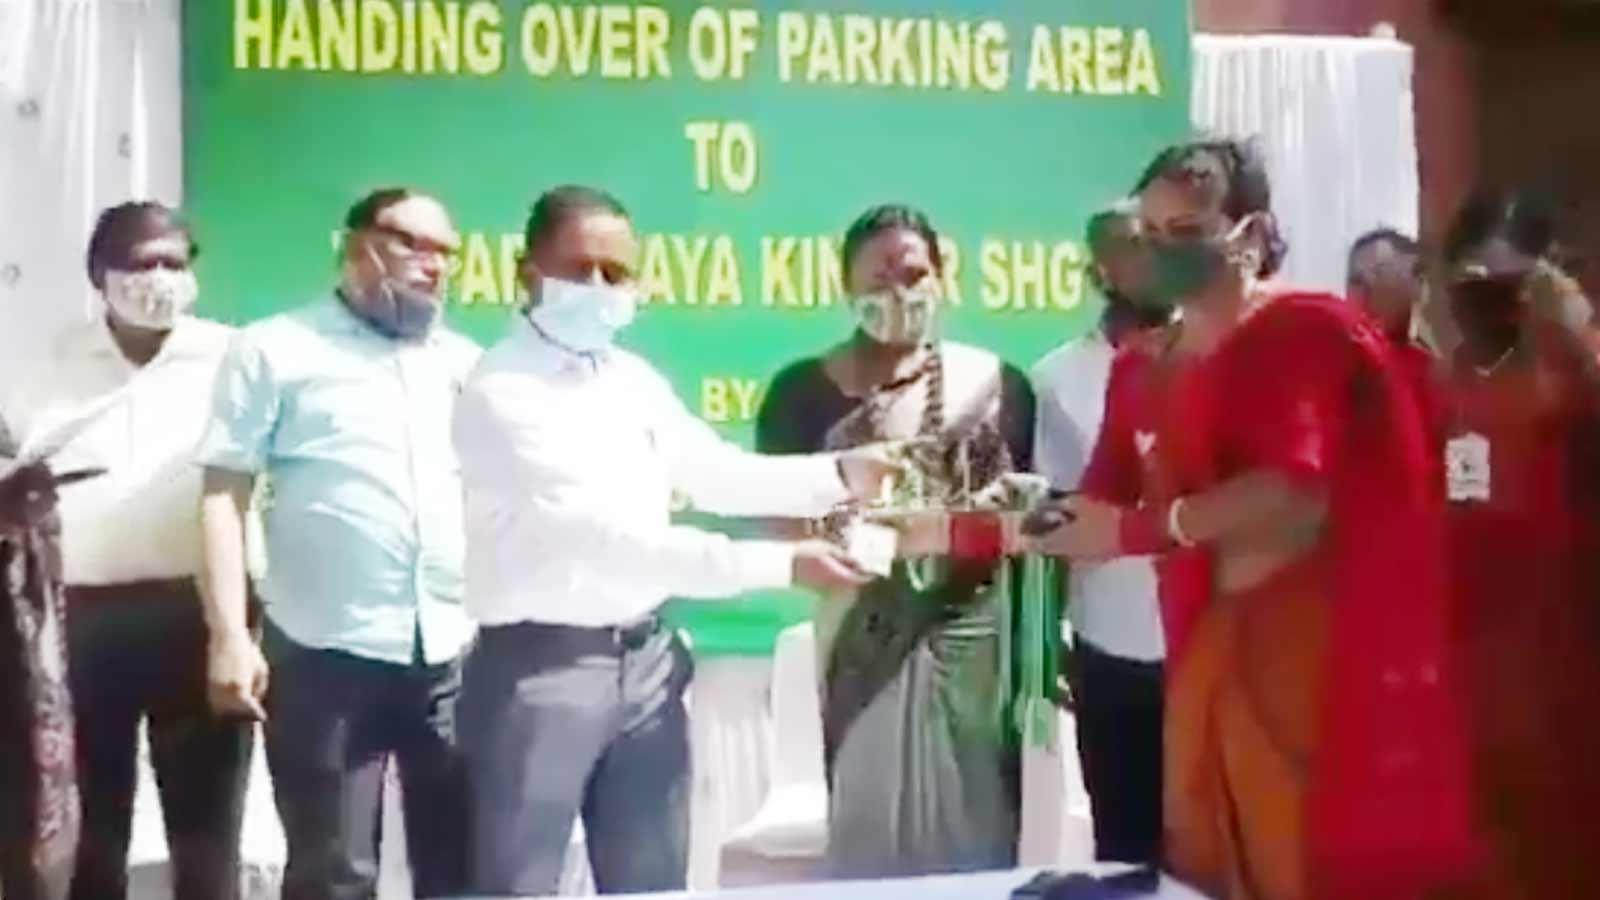 bhubaneswar-municipal-commissioner-distributes-id-cards-among-members-of-parichaya-shg-for-collection-of-parking-fees